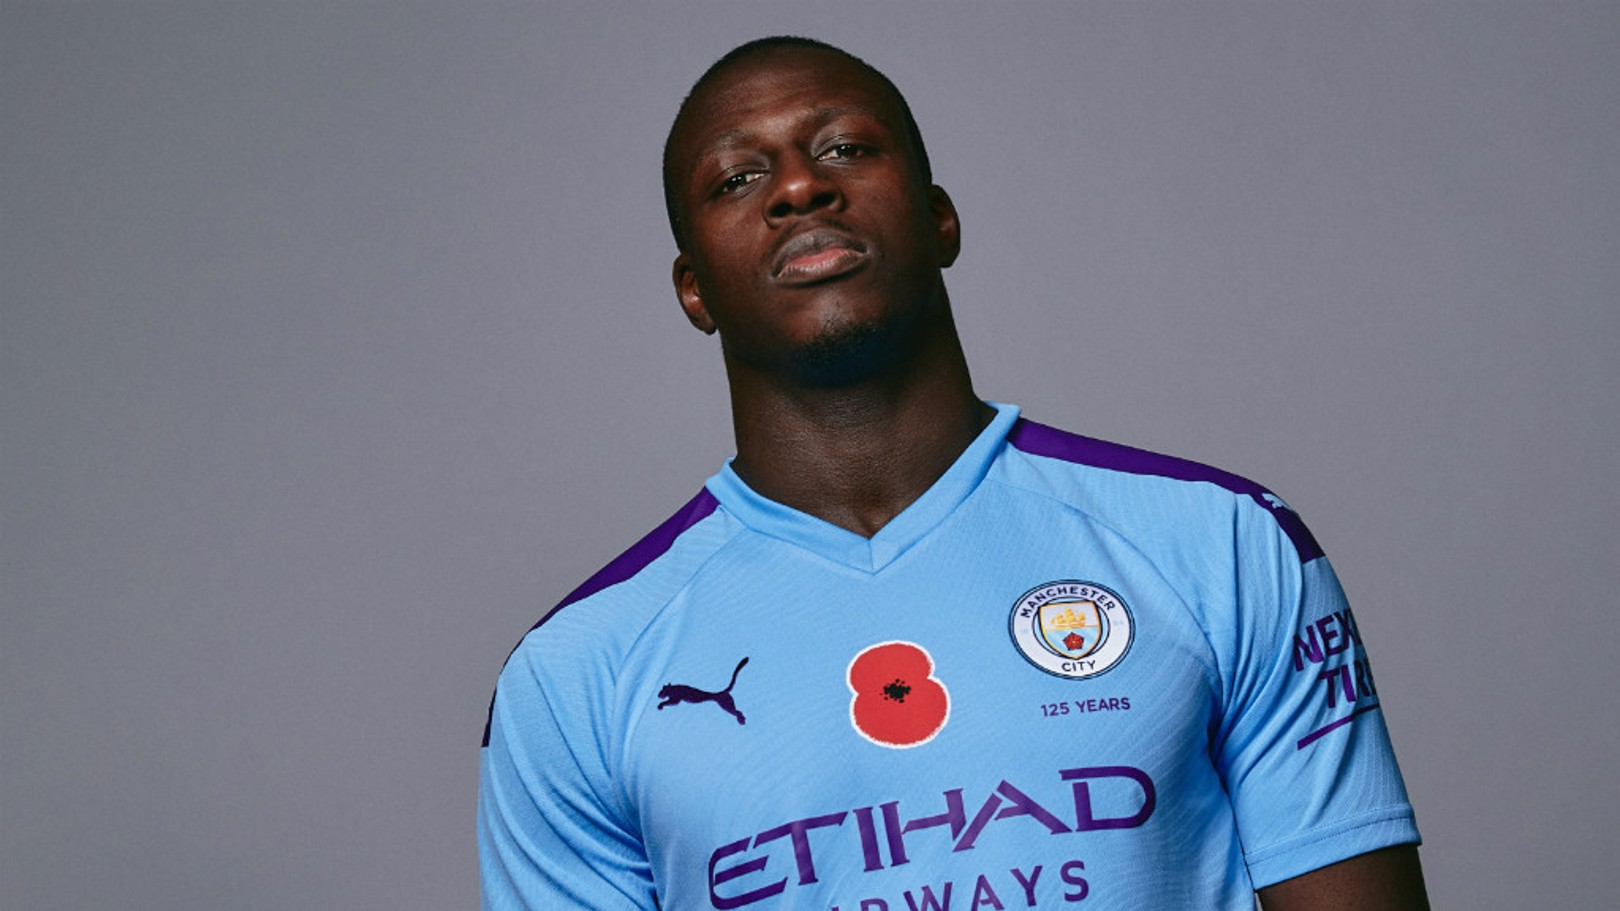 MANCHESTER REMEMBERS: Find out how you can get the poppy printed on your City shirt